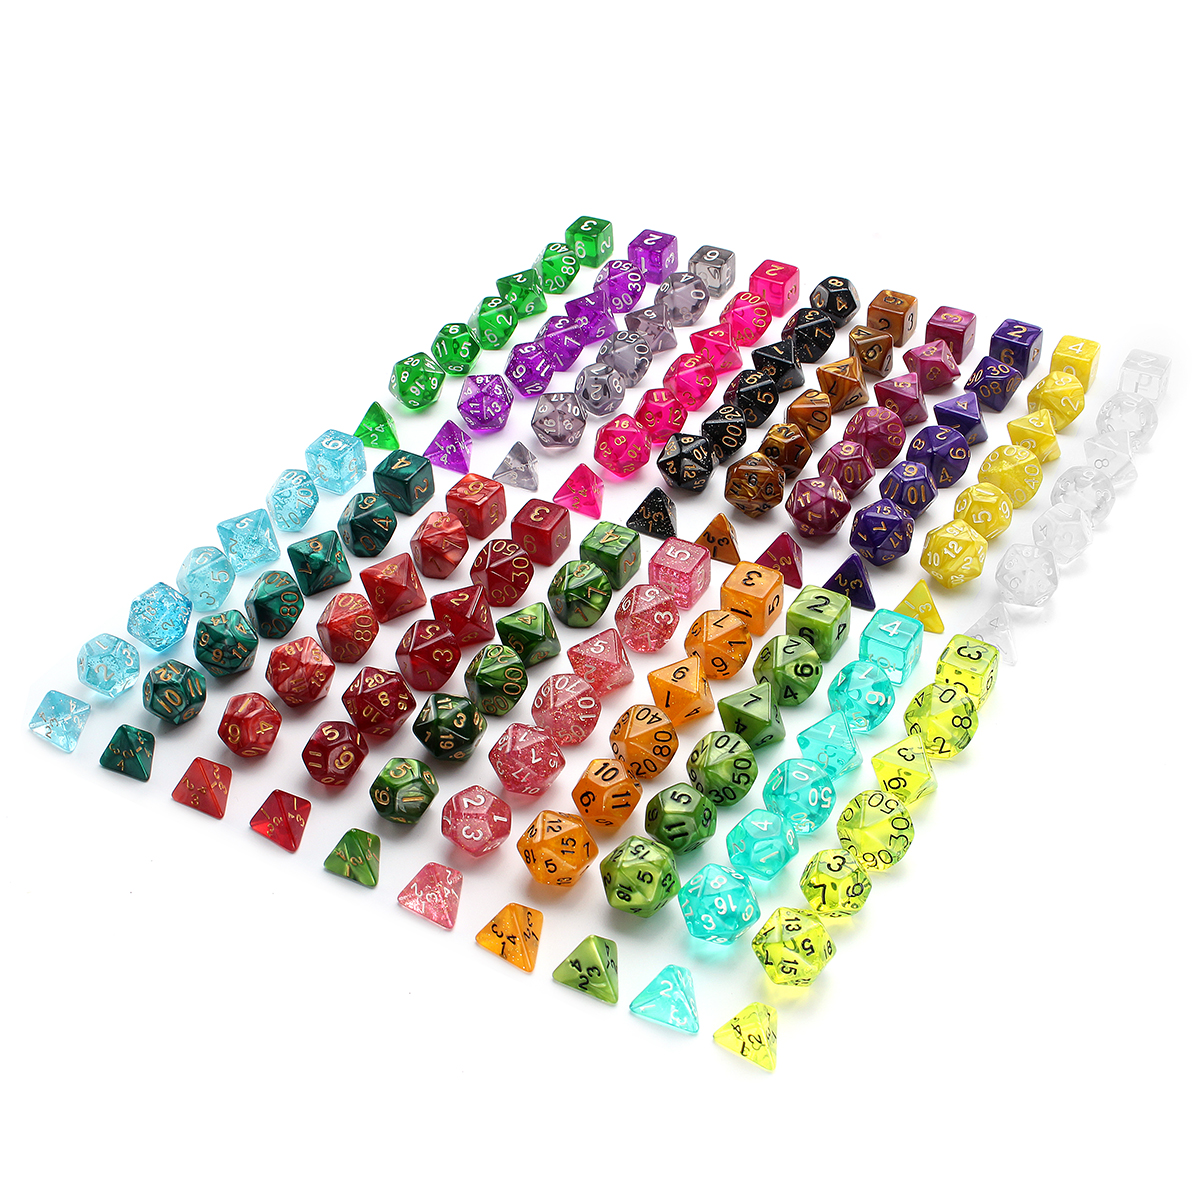 140Pcs/280Pcs Polyhedral Dices for Dungeons & Dragons Desktop Games With Storage Bags